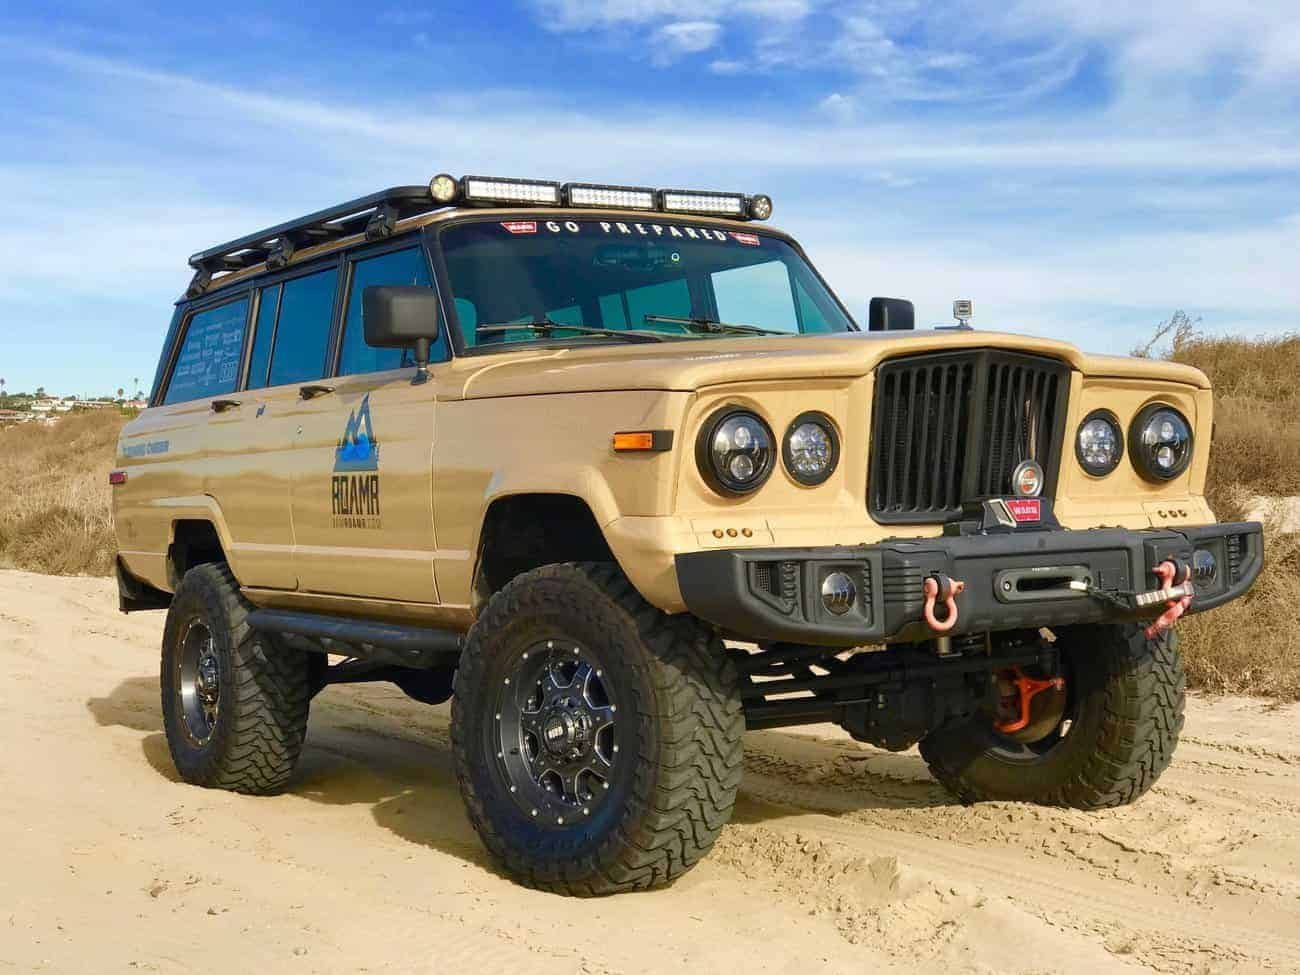 Classifieds Roamr Wagoneer Jeep Wagoneer Jeep Cars Jeep Grand